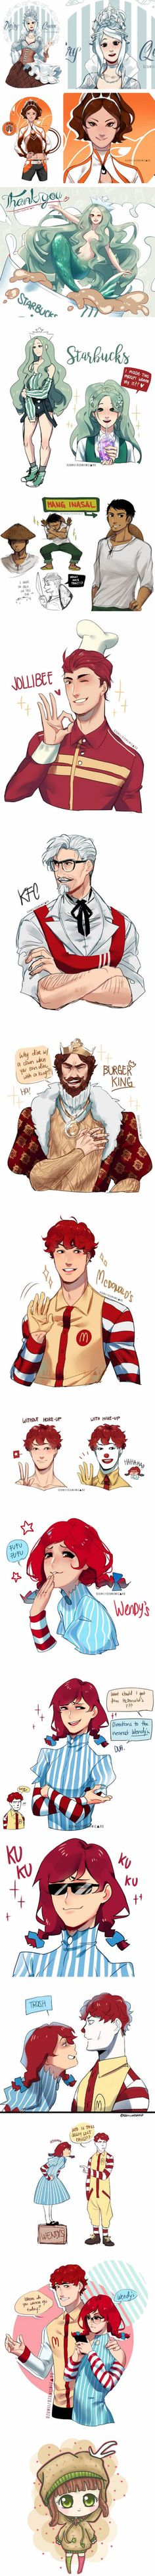 Artist Turns Fast Food Restaurant Chains Into Anime Characters -- why does KFC look like Markiplier